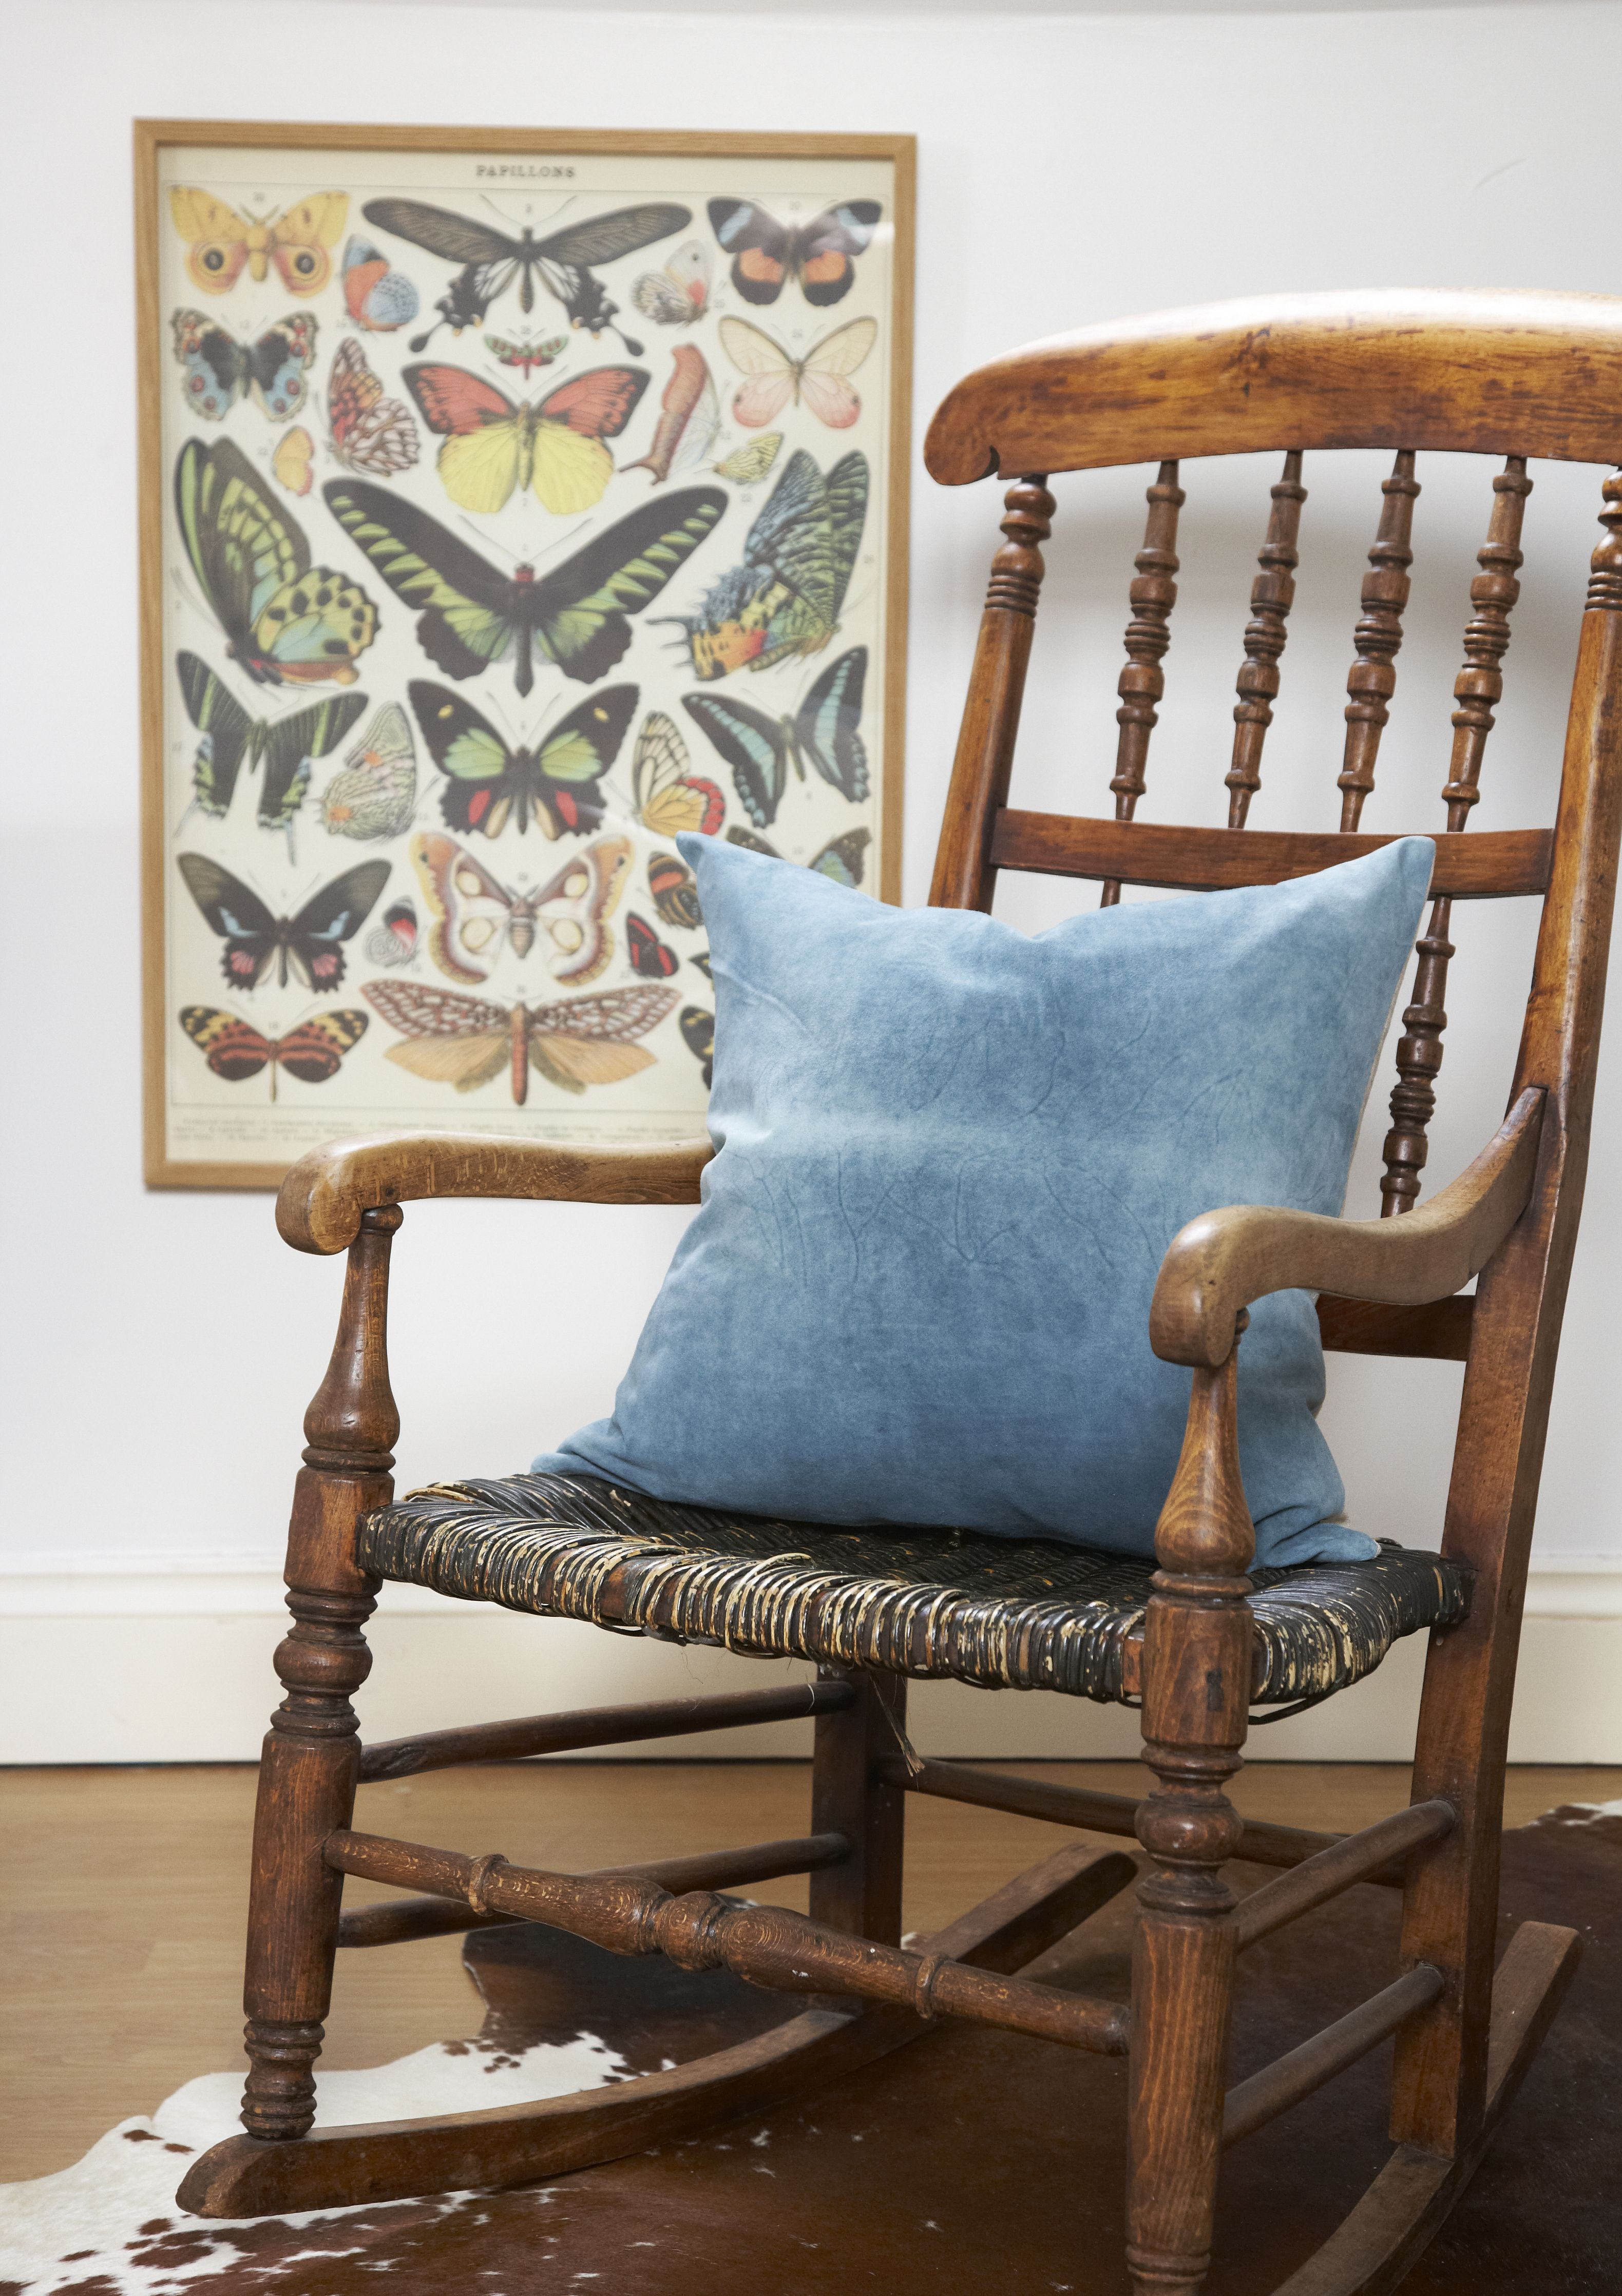 Teal Suede Leather Cushion On Rocking Chair   Butterfly Print. Murphy McCall